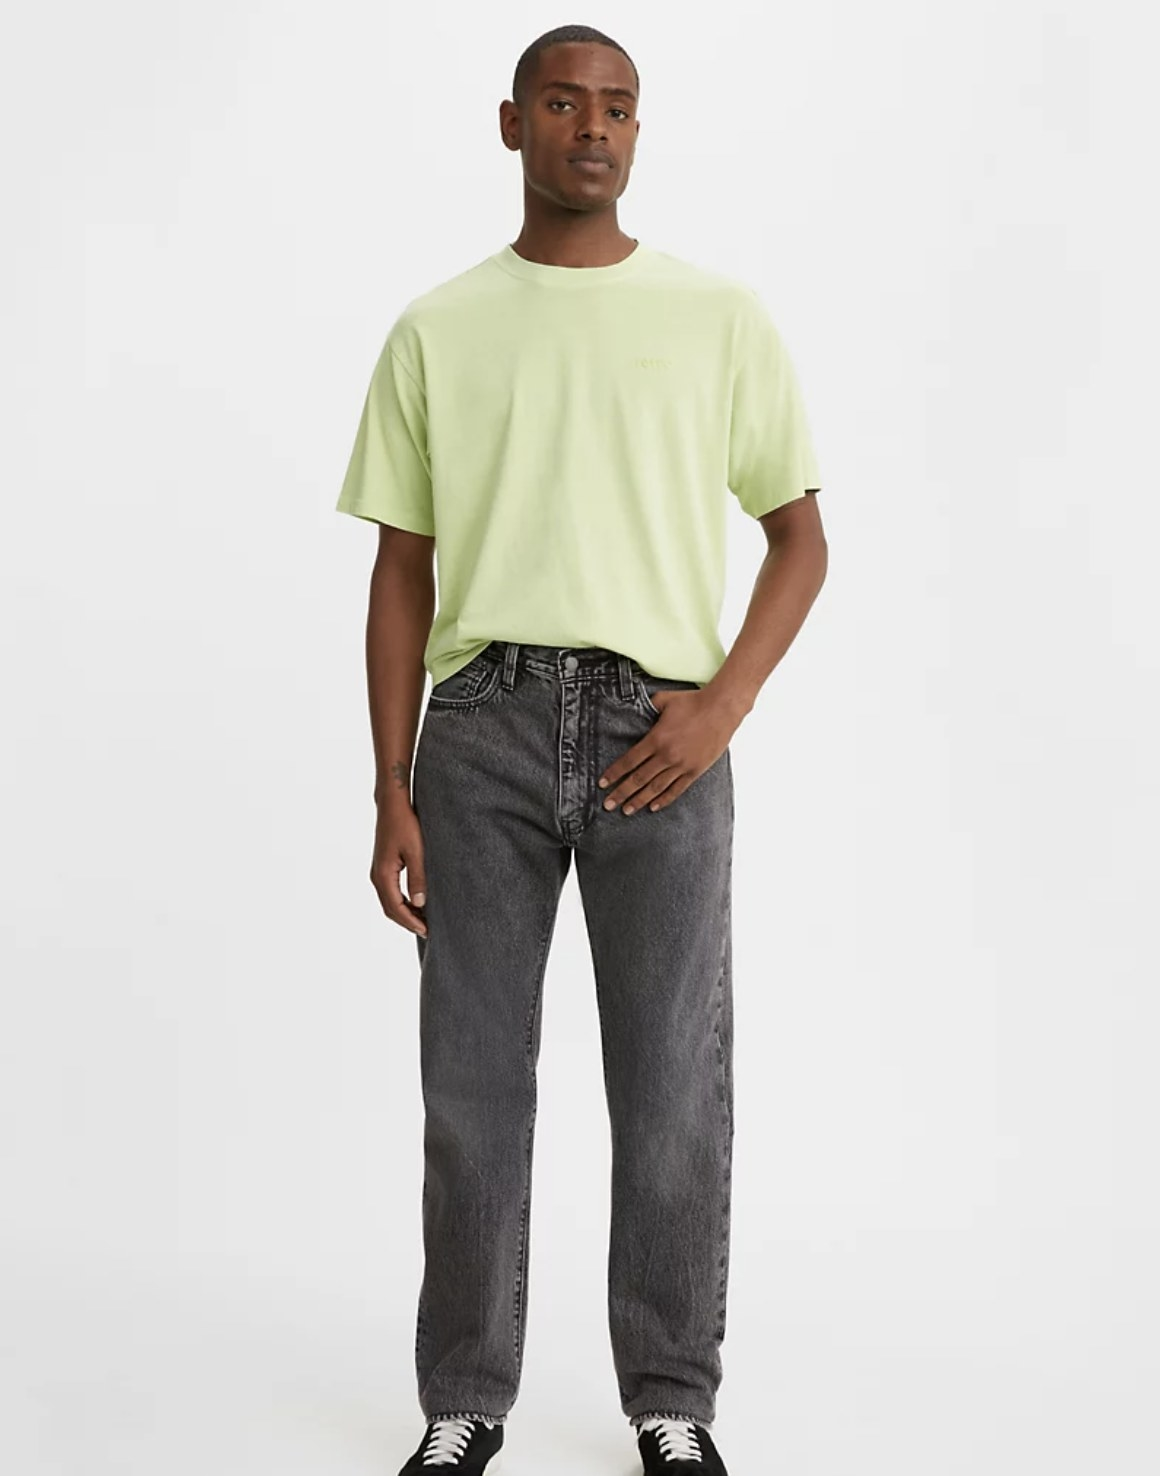 Model is wearing a lime green shirt and black light wash denim jeans